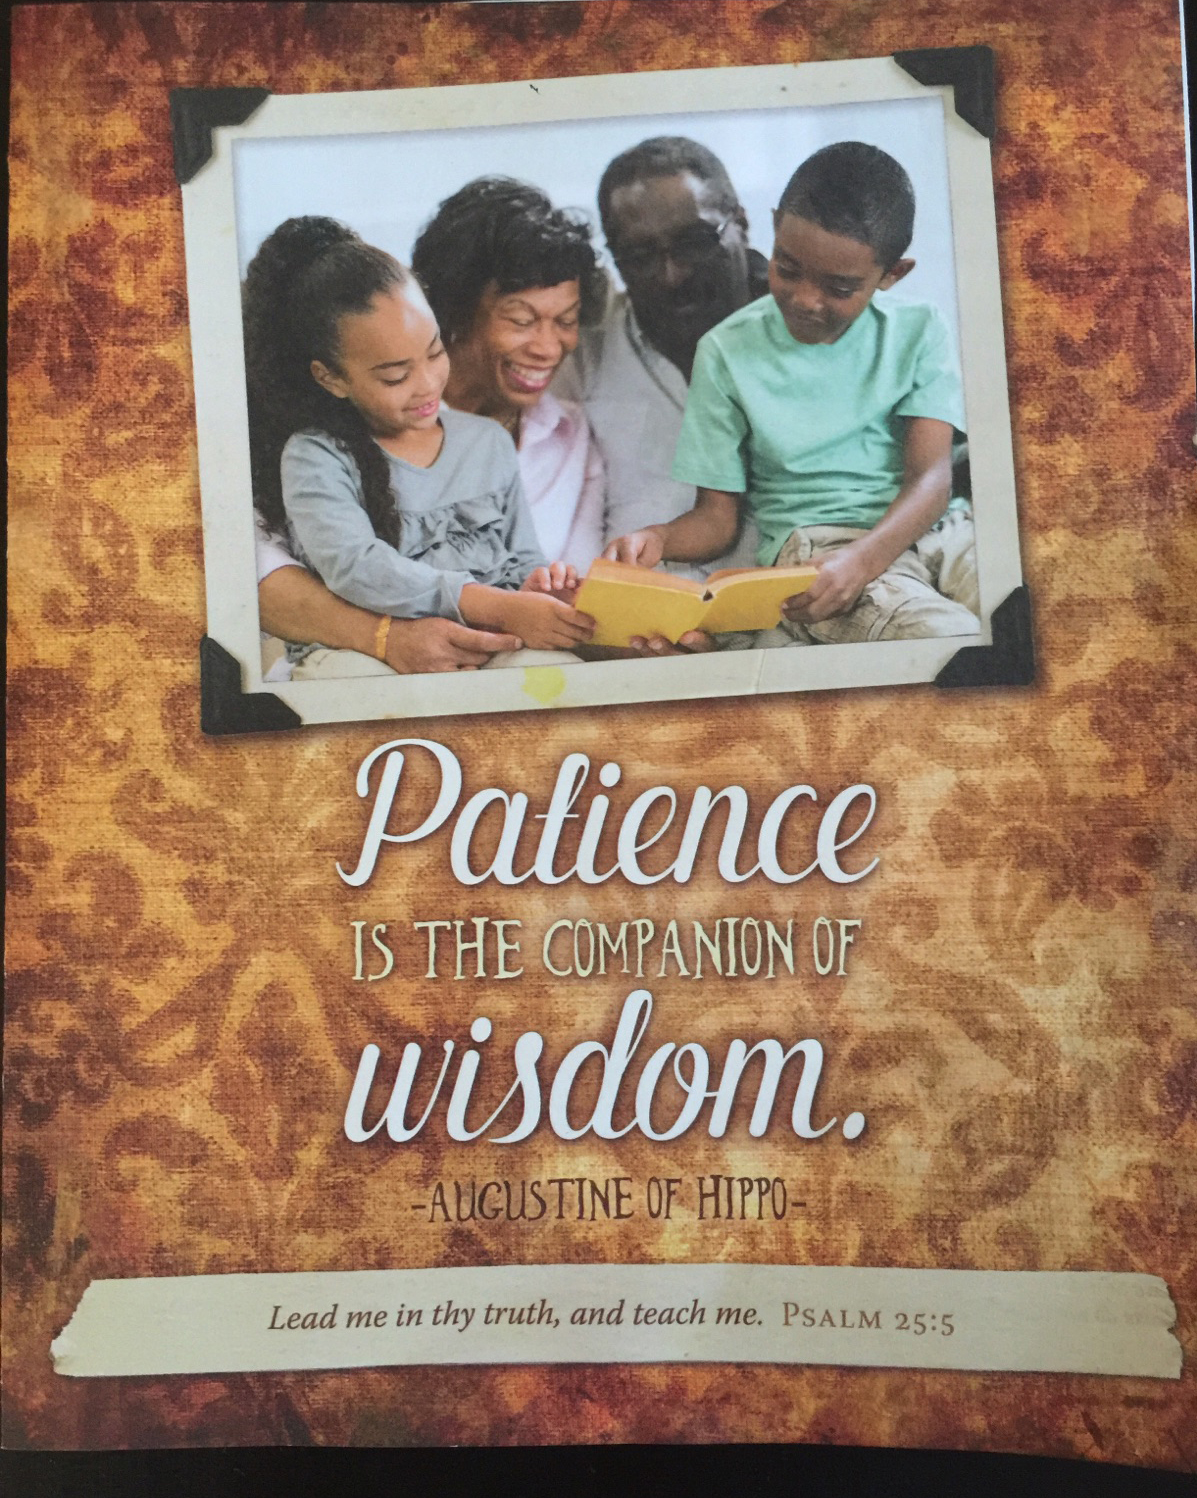 Patience and Wisdom